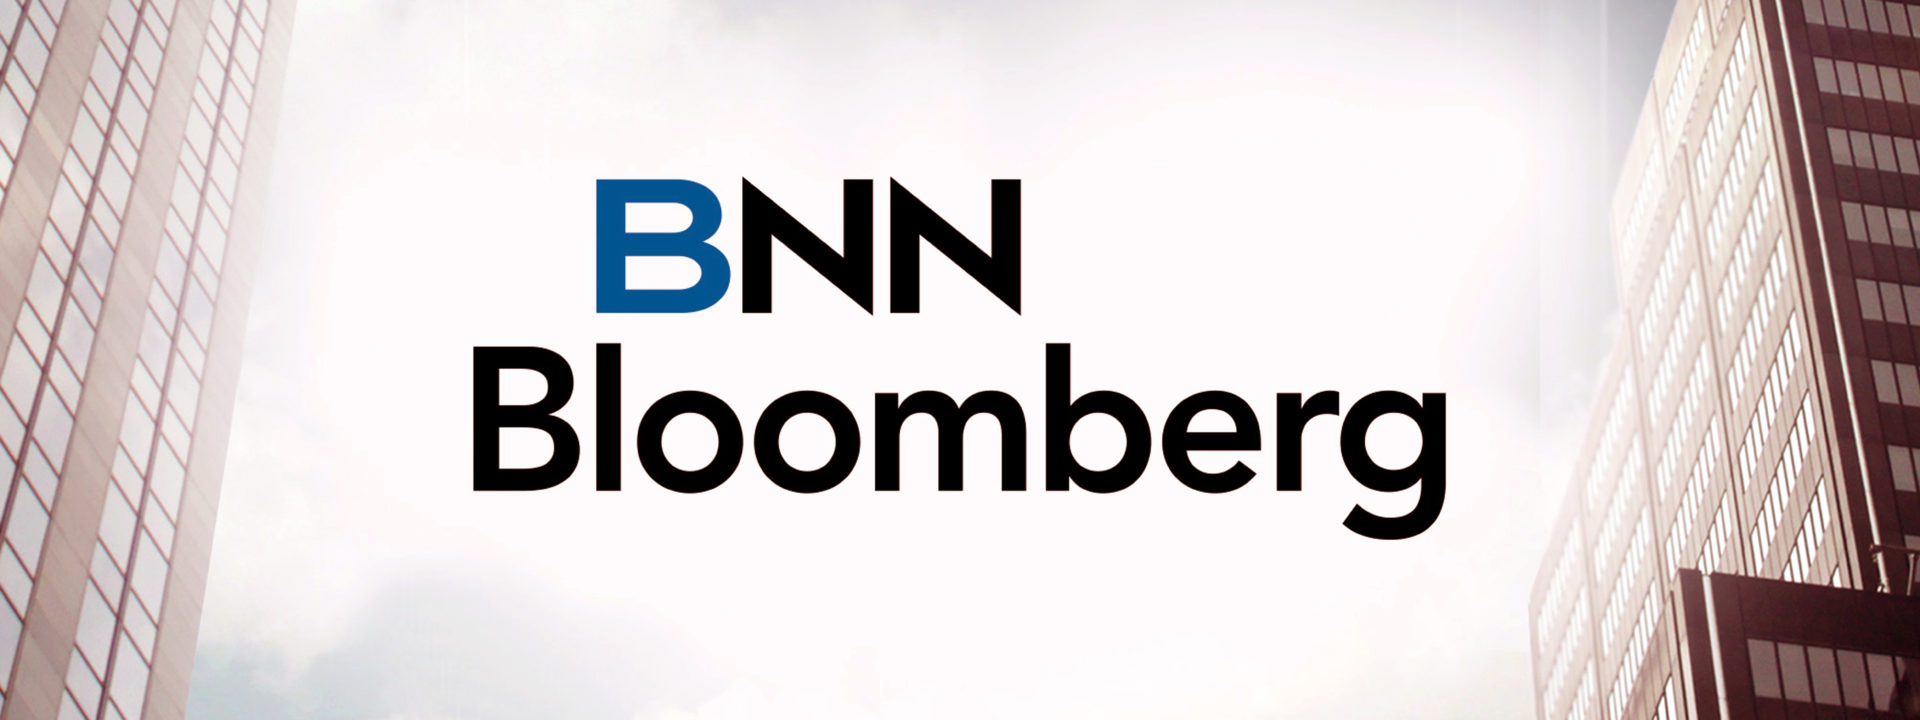 Press Release – BNN Bloomberg Identifies Indiva as Rapidly Growing in the Cannabis Sector